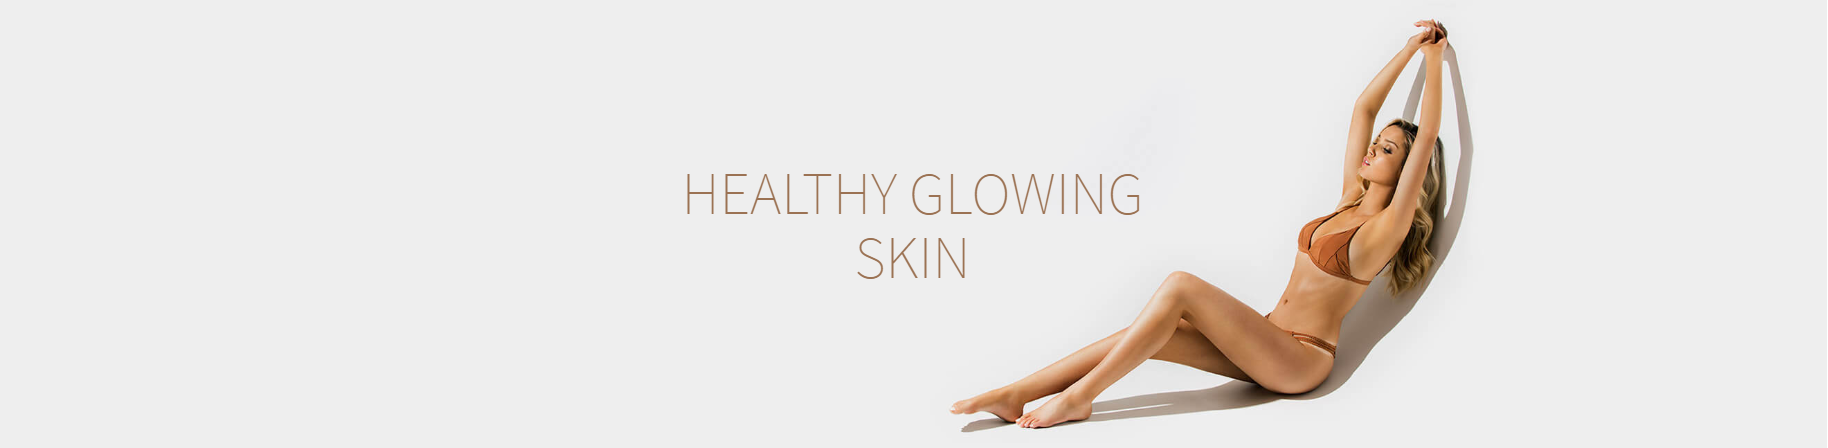 healthy glowing skin banner.png